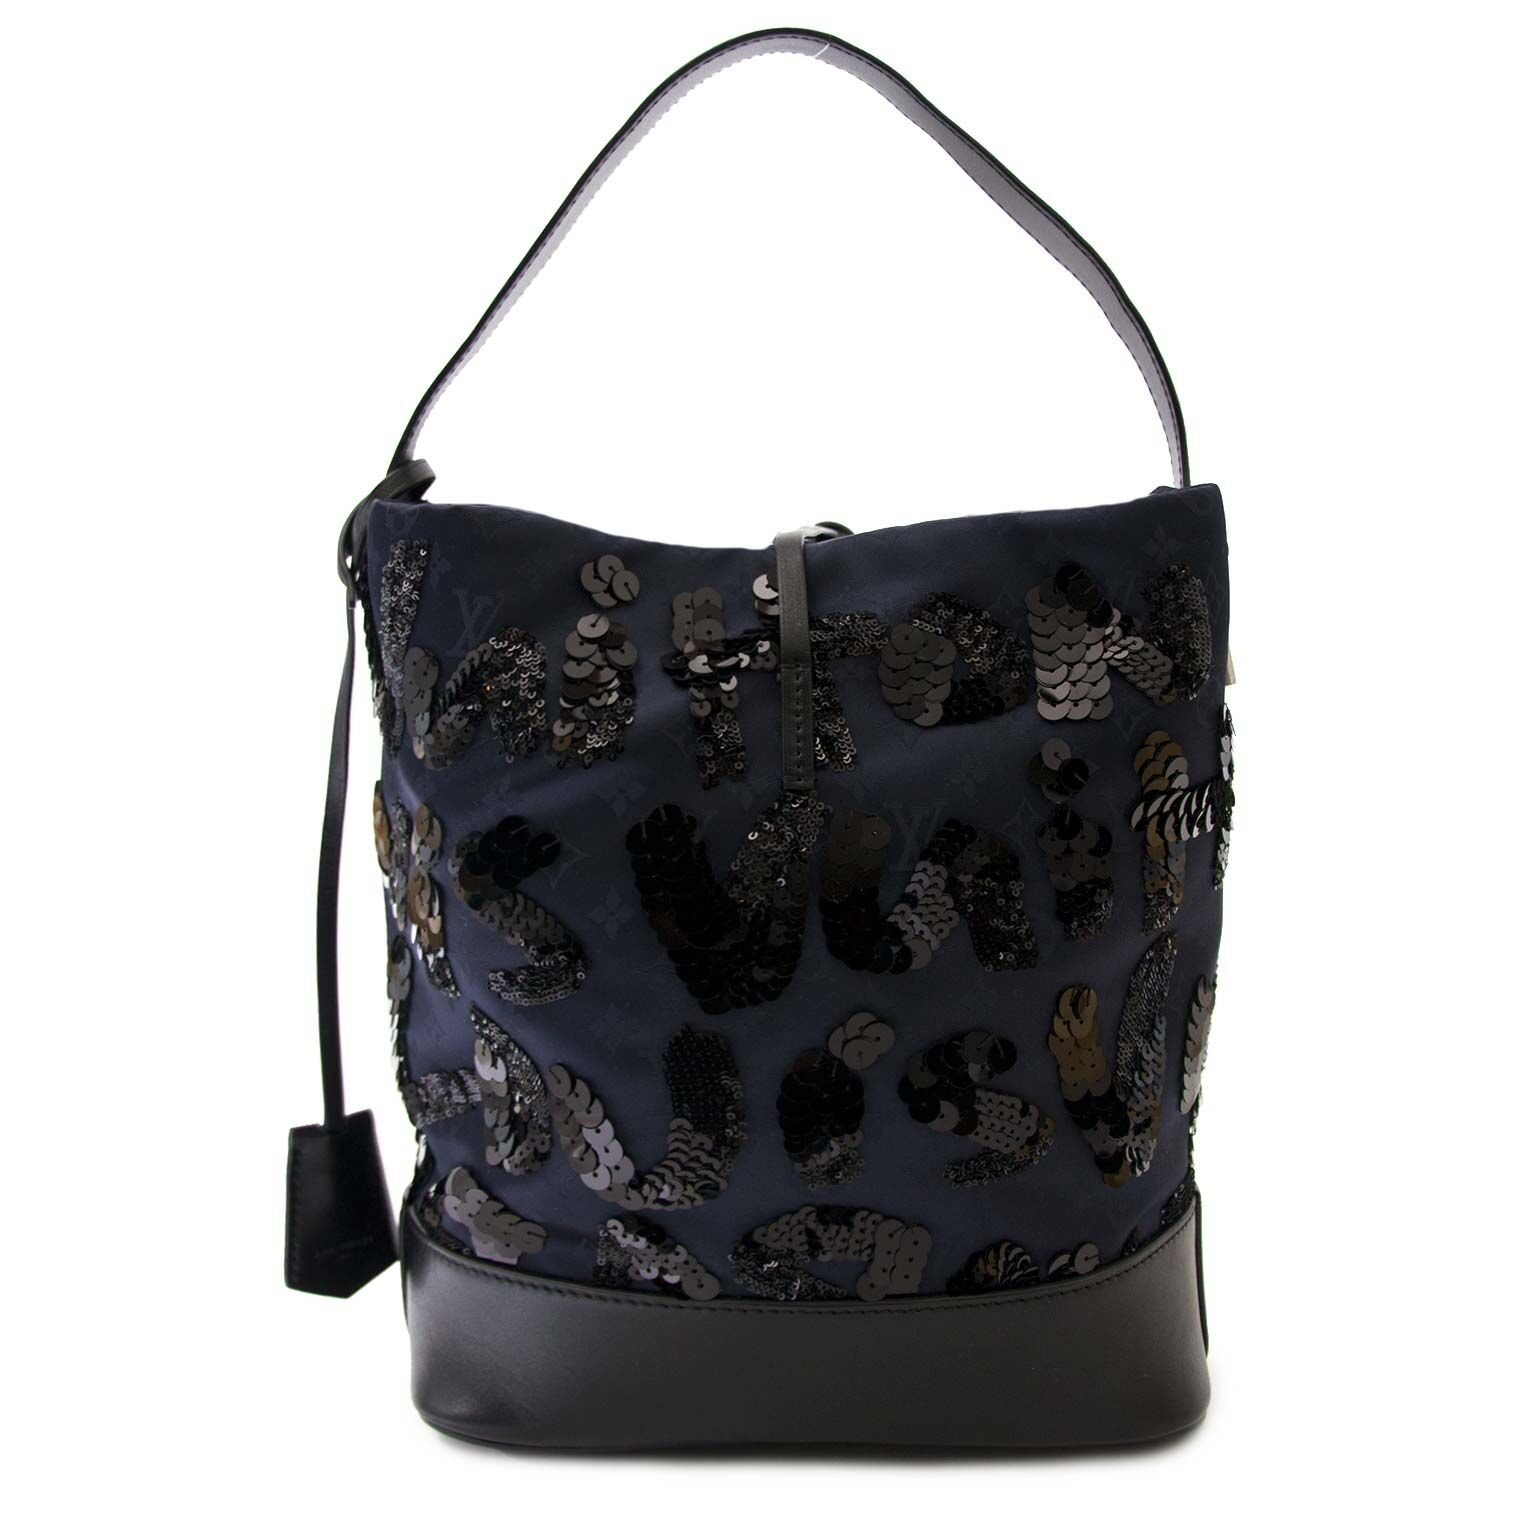 buy secondhand Louis Vuitton Spotlight Monogram Graffiti Dark Blue GM Sequin By Stephen Sprouse at labellov